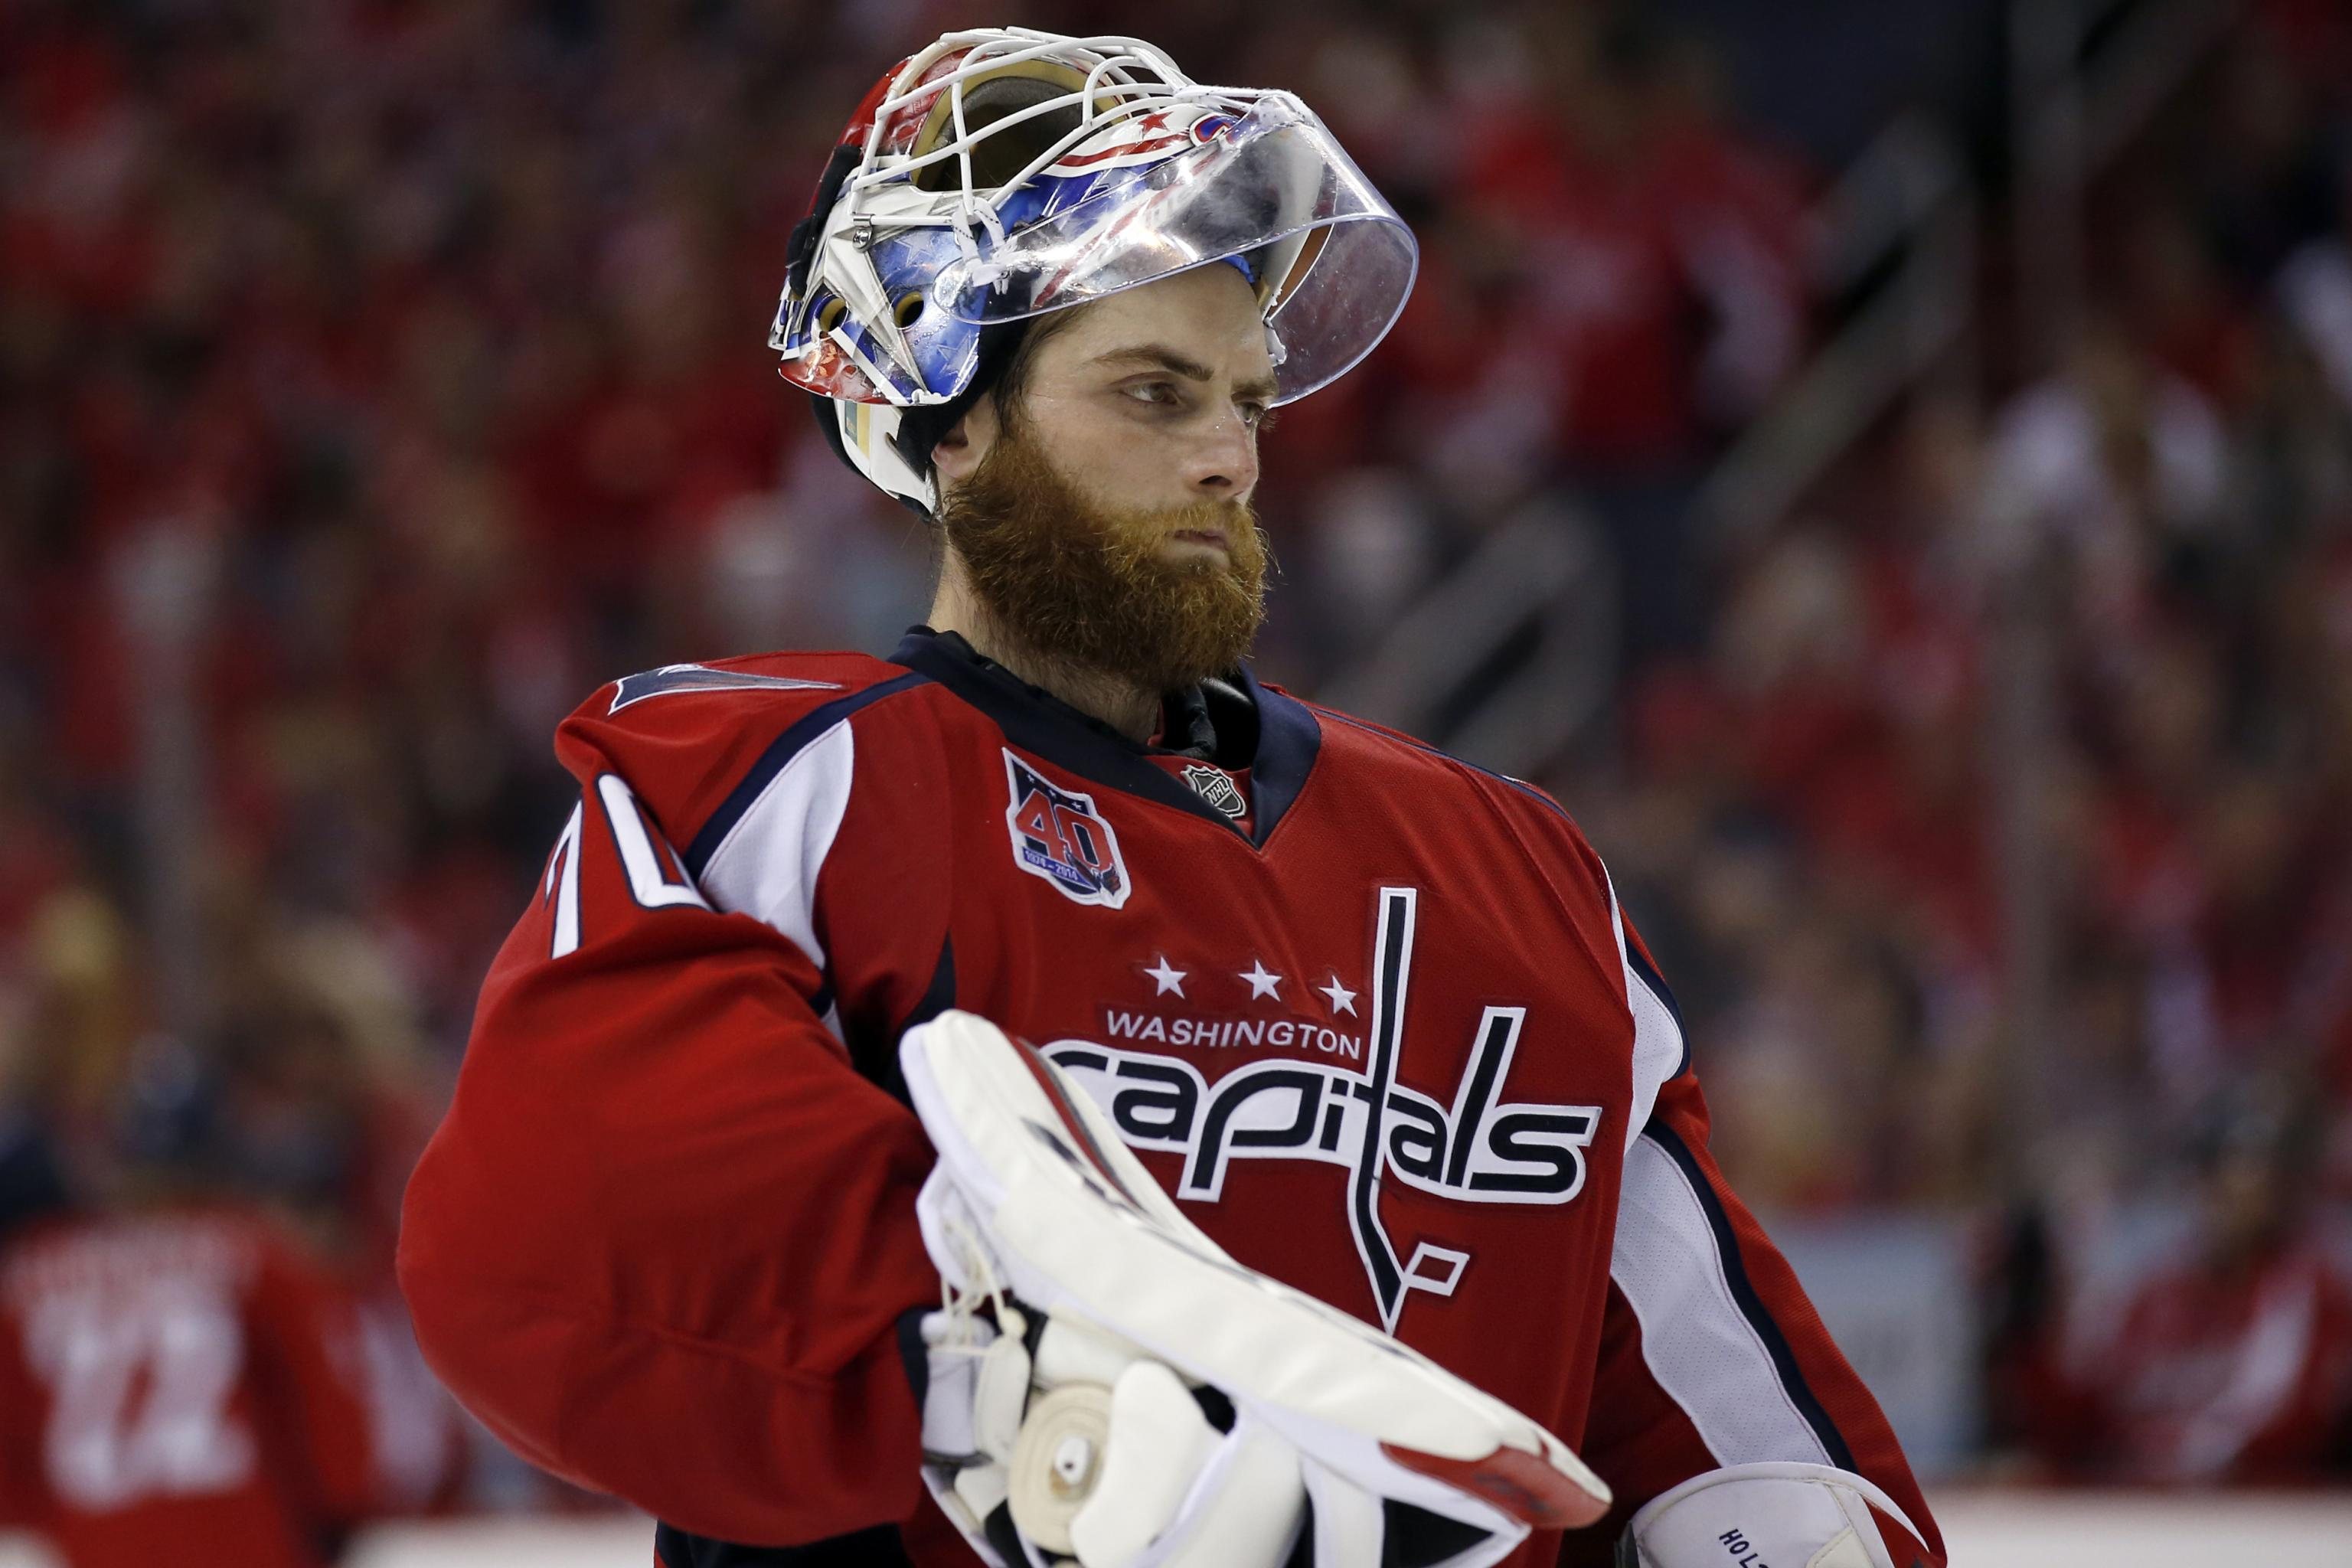 Braden Holtby Capitals Agree To New Contract Latest Details And Reaction Bleacher Report Latest News Videos And Highlights